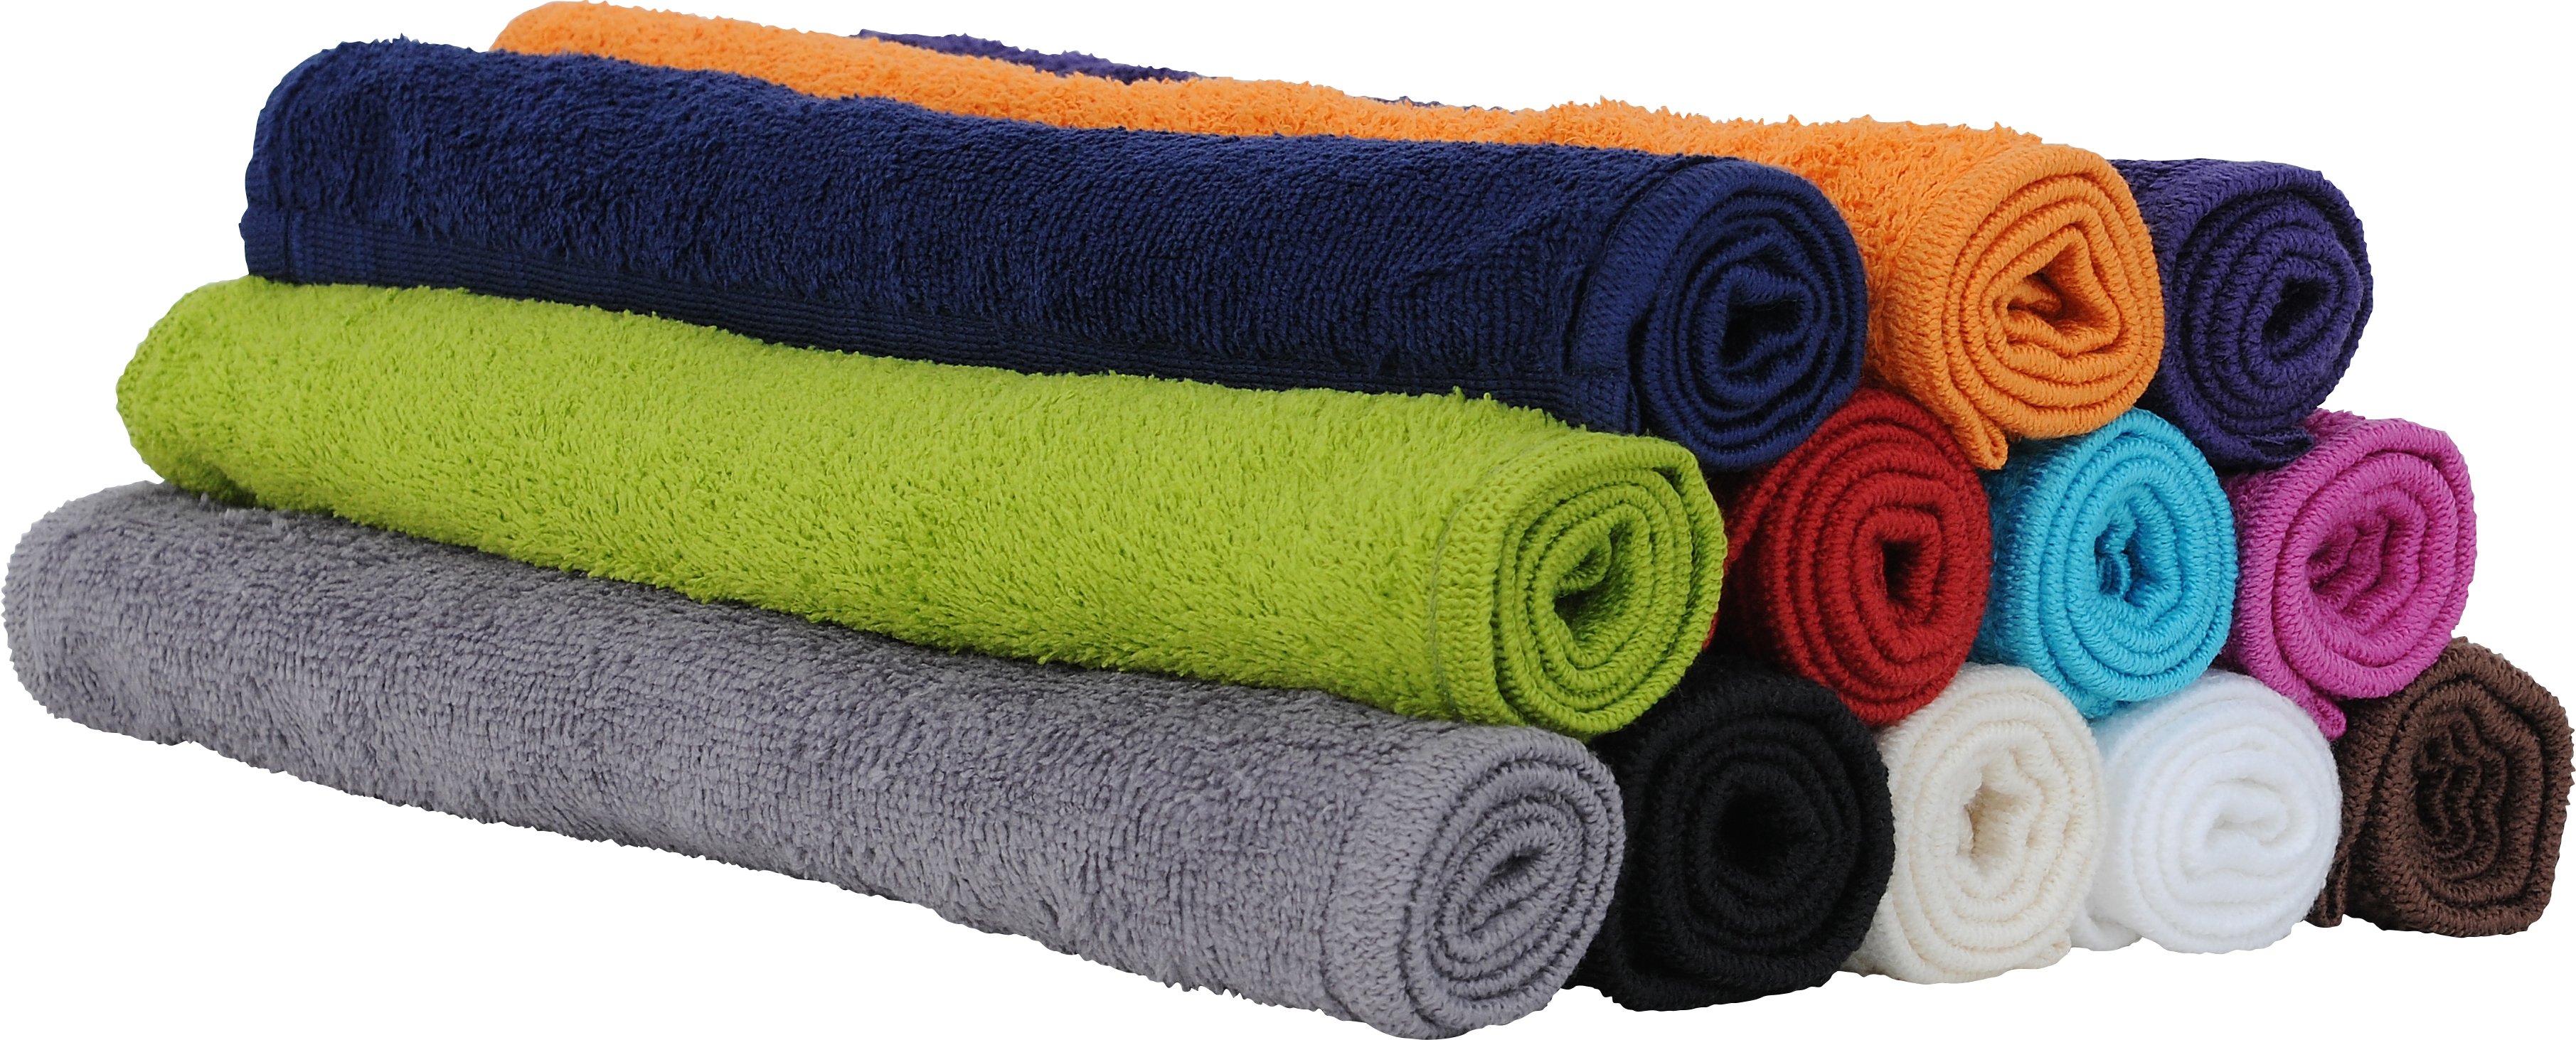 Small Towels 30x40 yellow